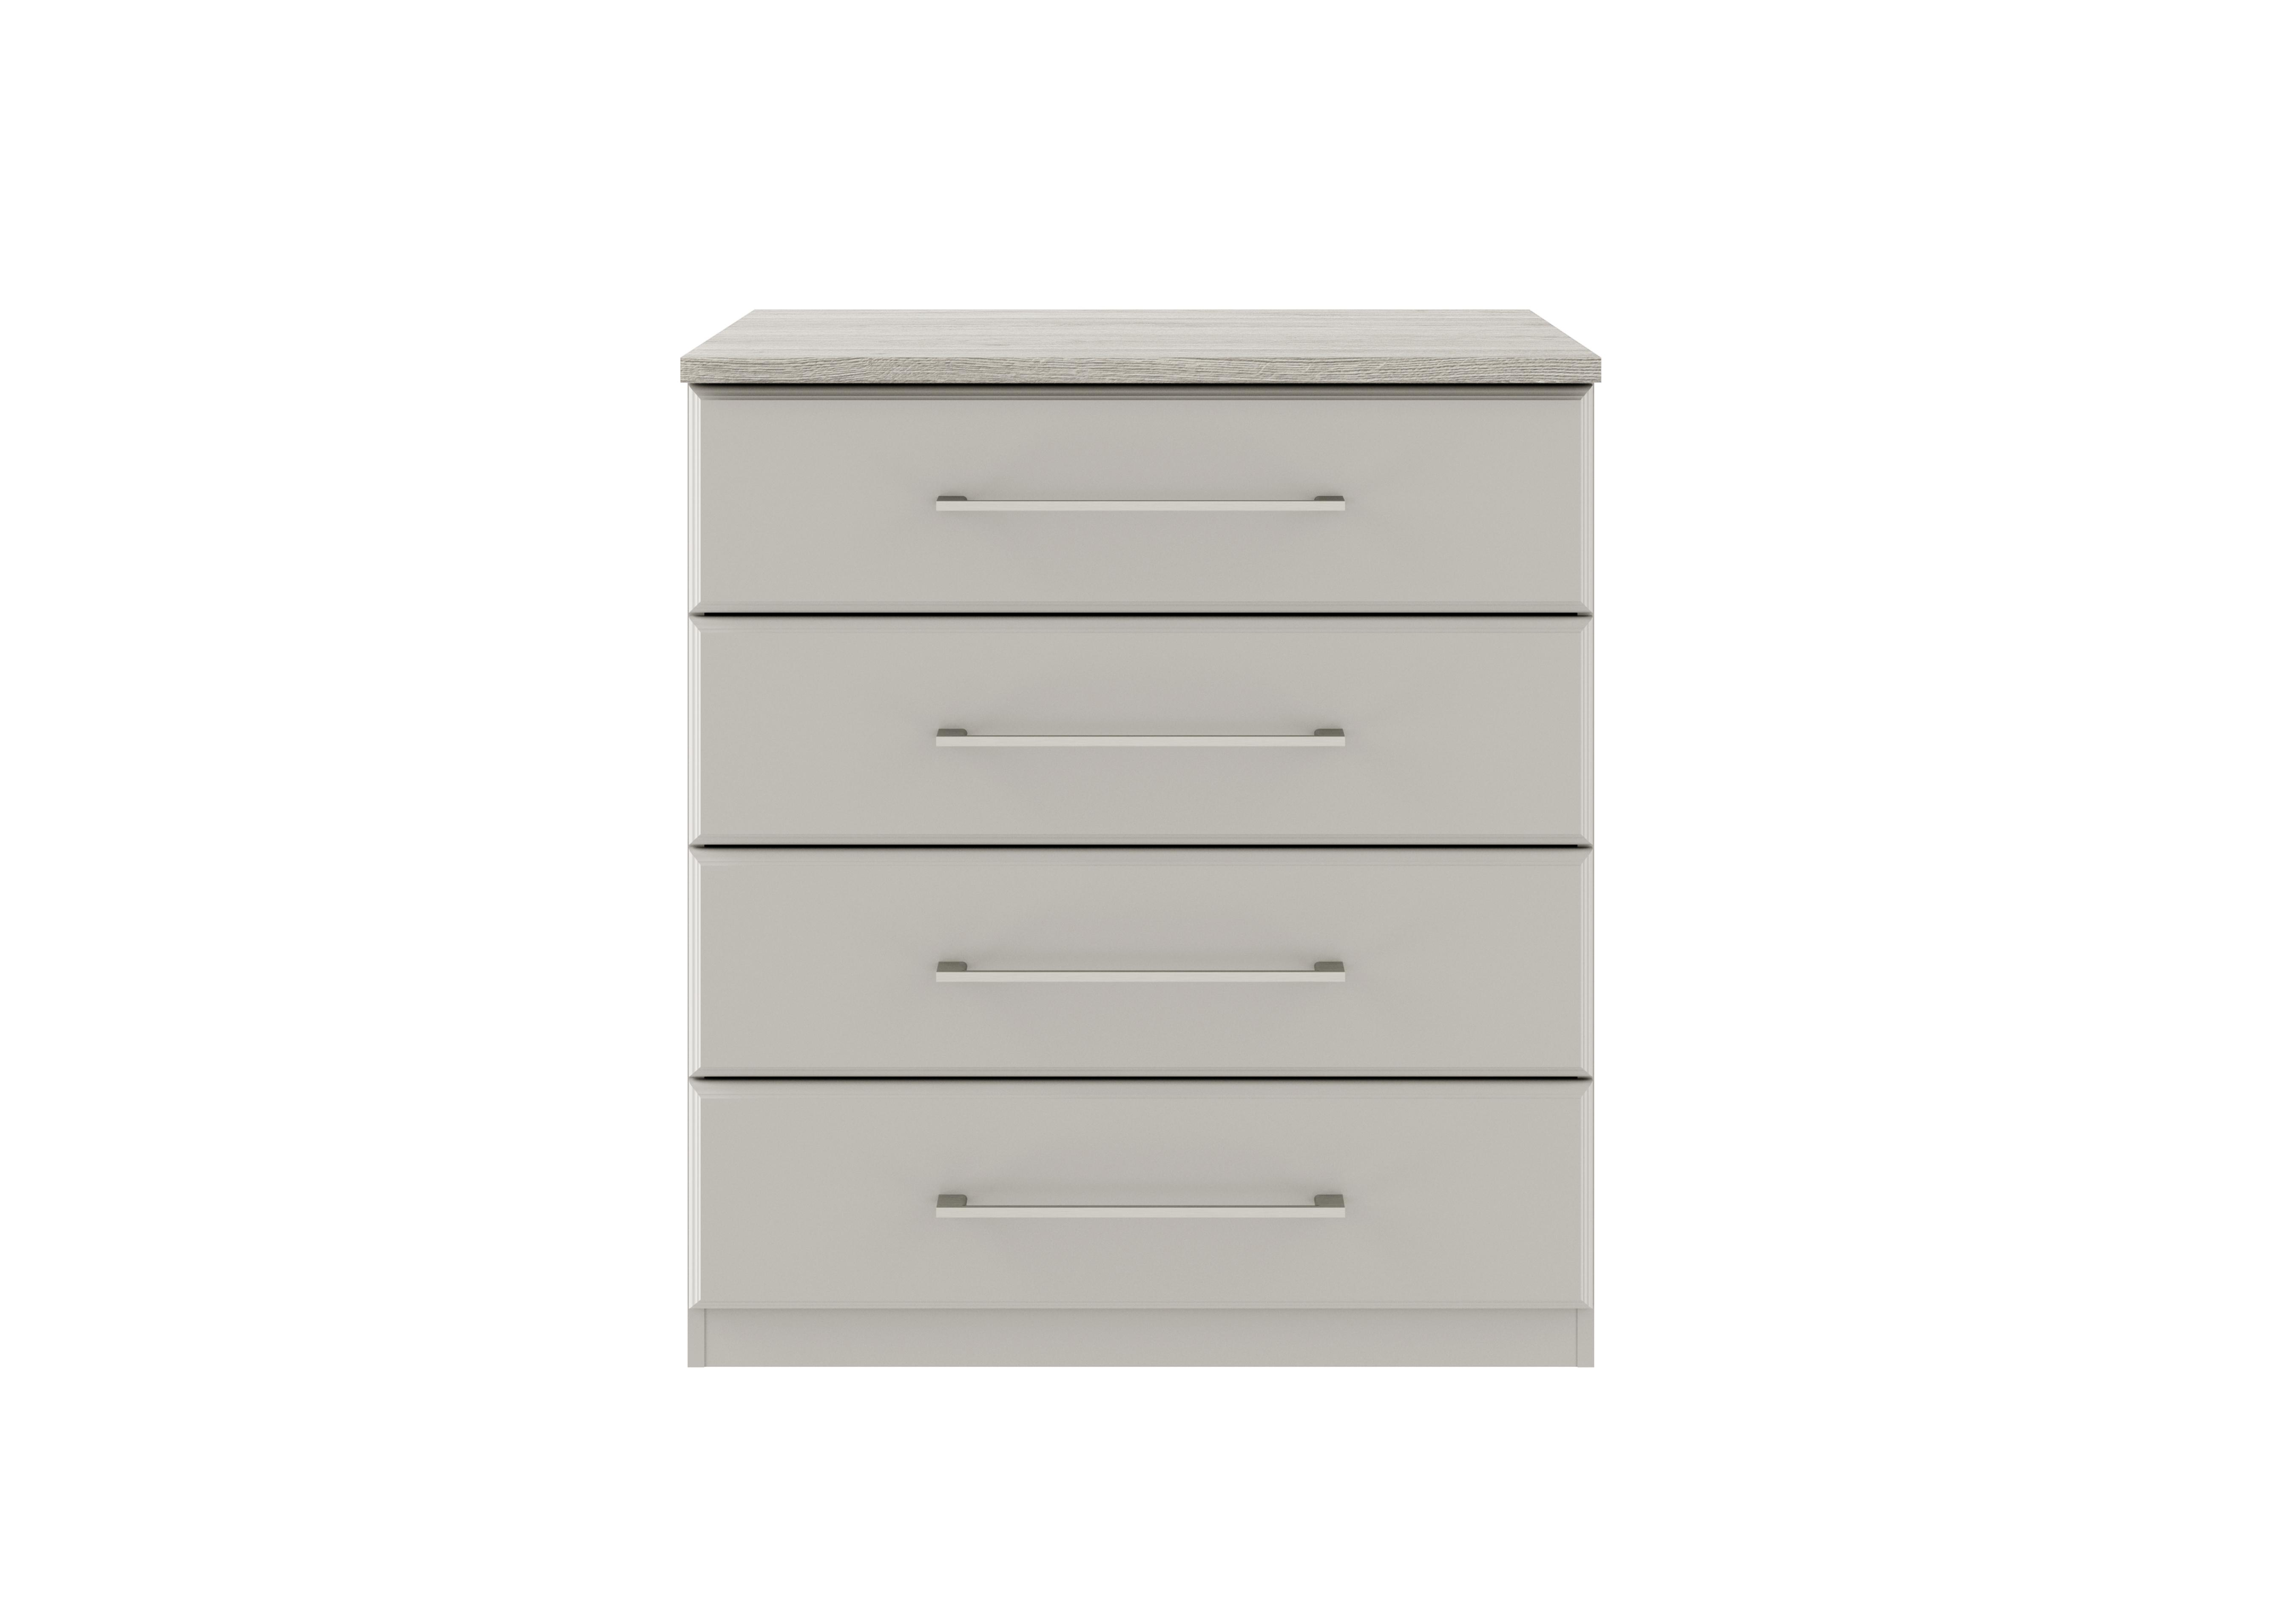 Extra 10% Off Matching Bedroom Furniture When You Purchase A Wardrobe